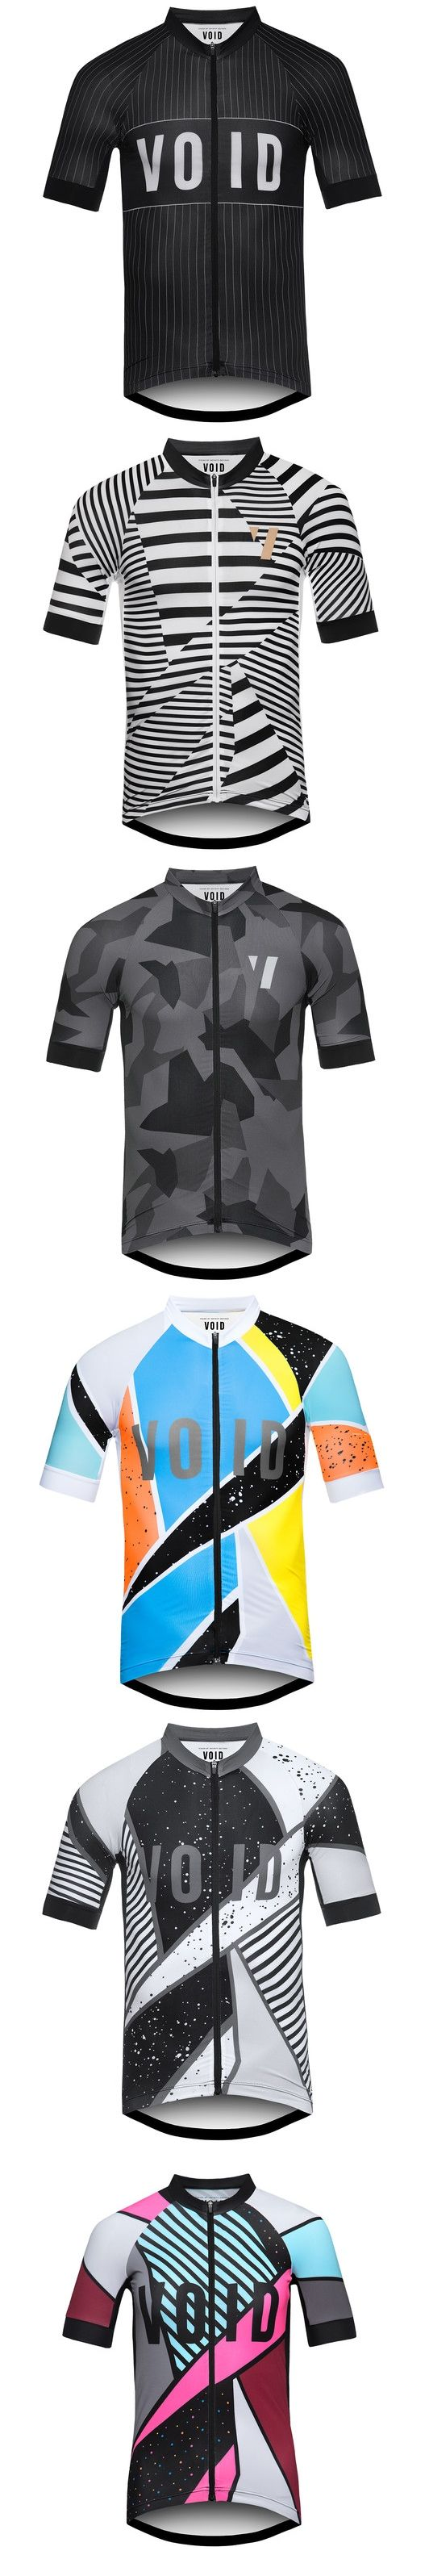 2018NEW summer man SHORT SLEEVE CYCLING JERSEY bib shorts Cool cycling wear Ropa Ciclismo road bike clothes best quality racing